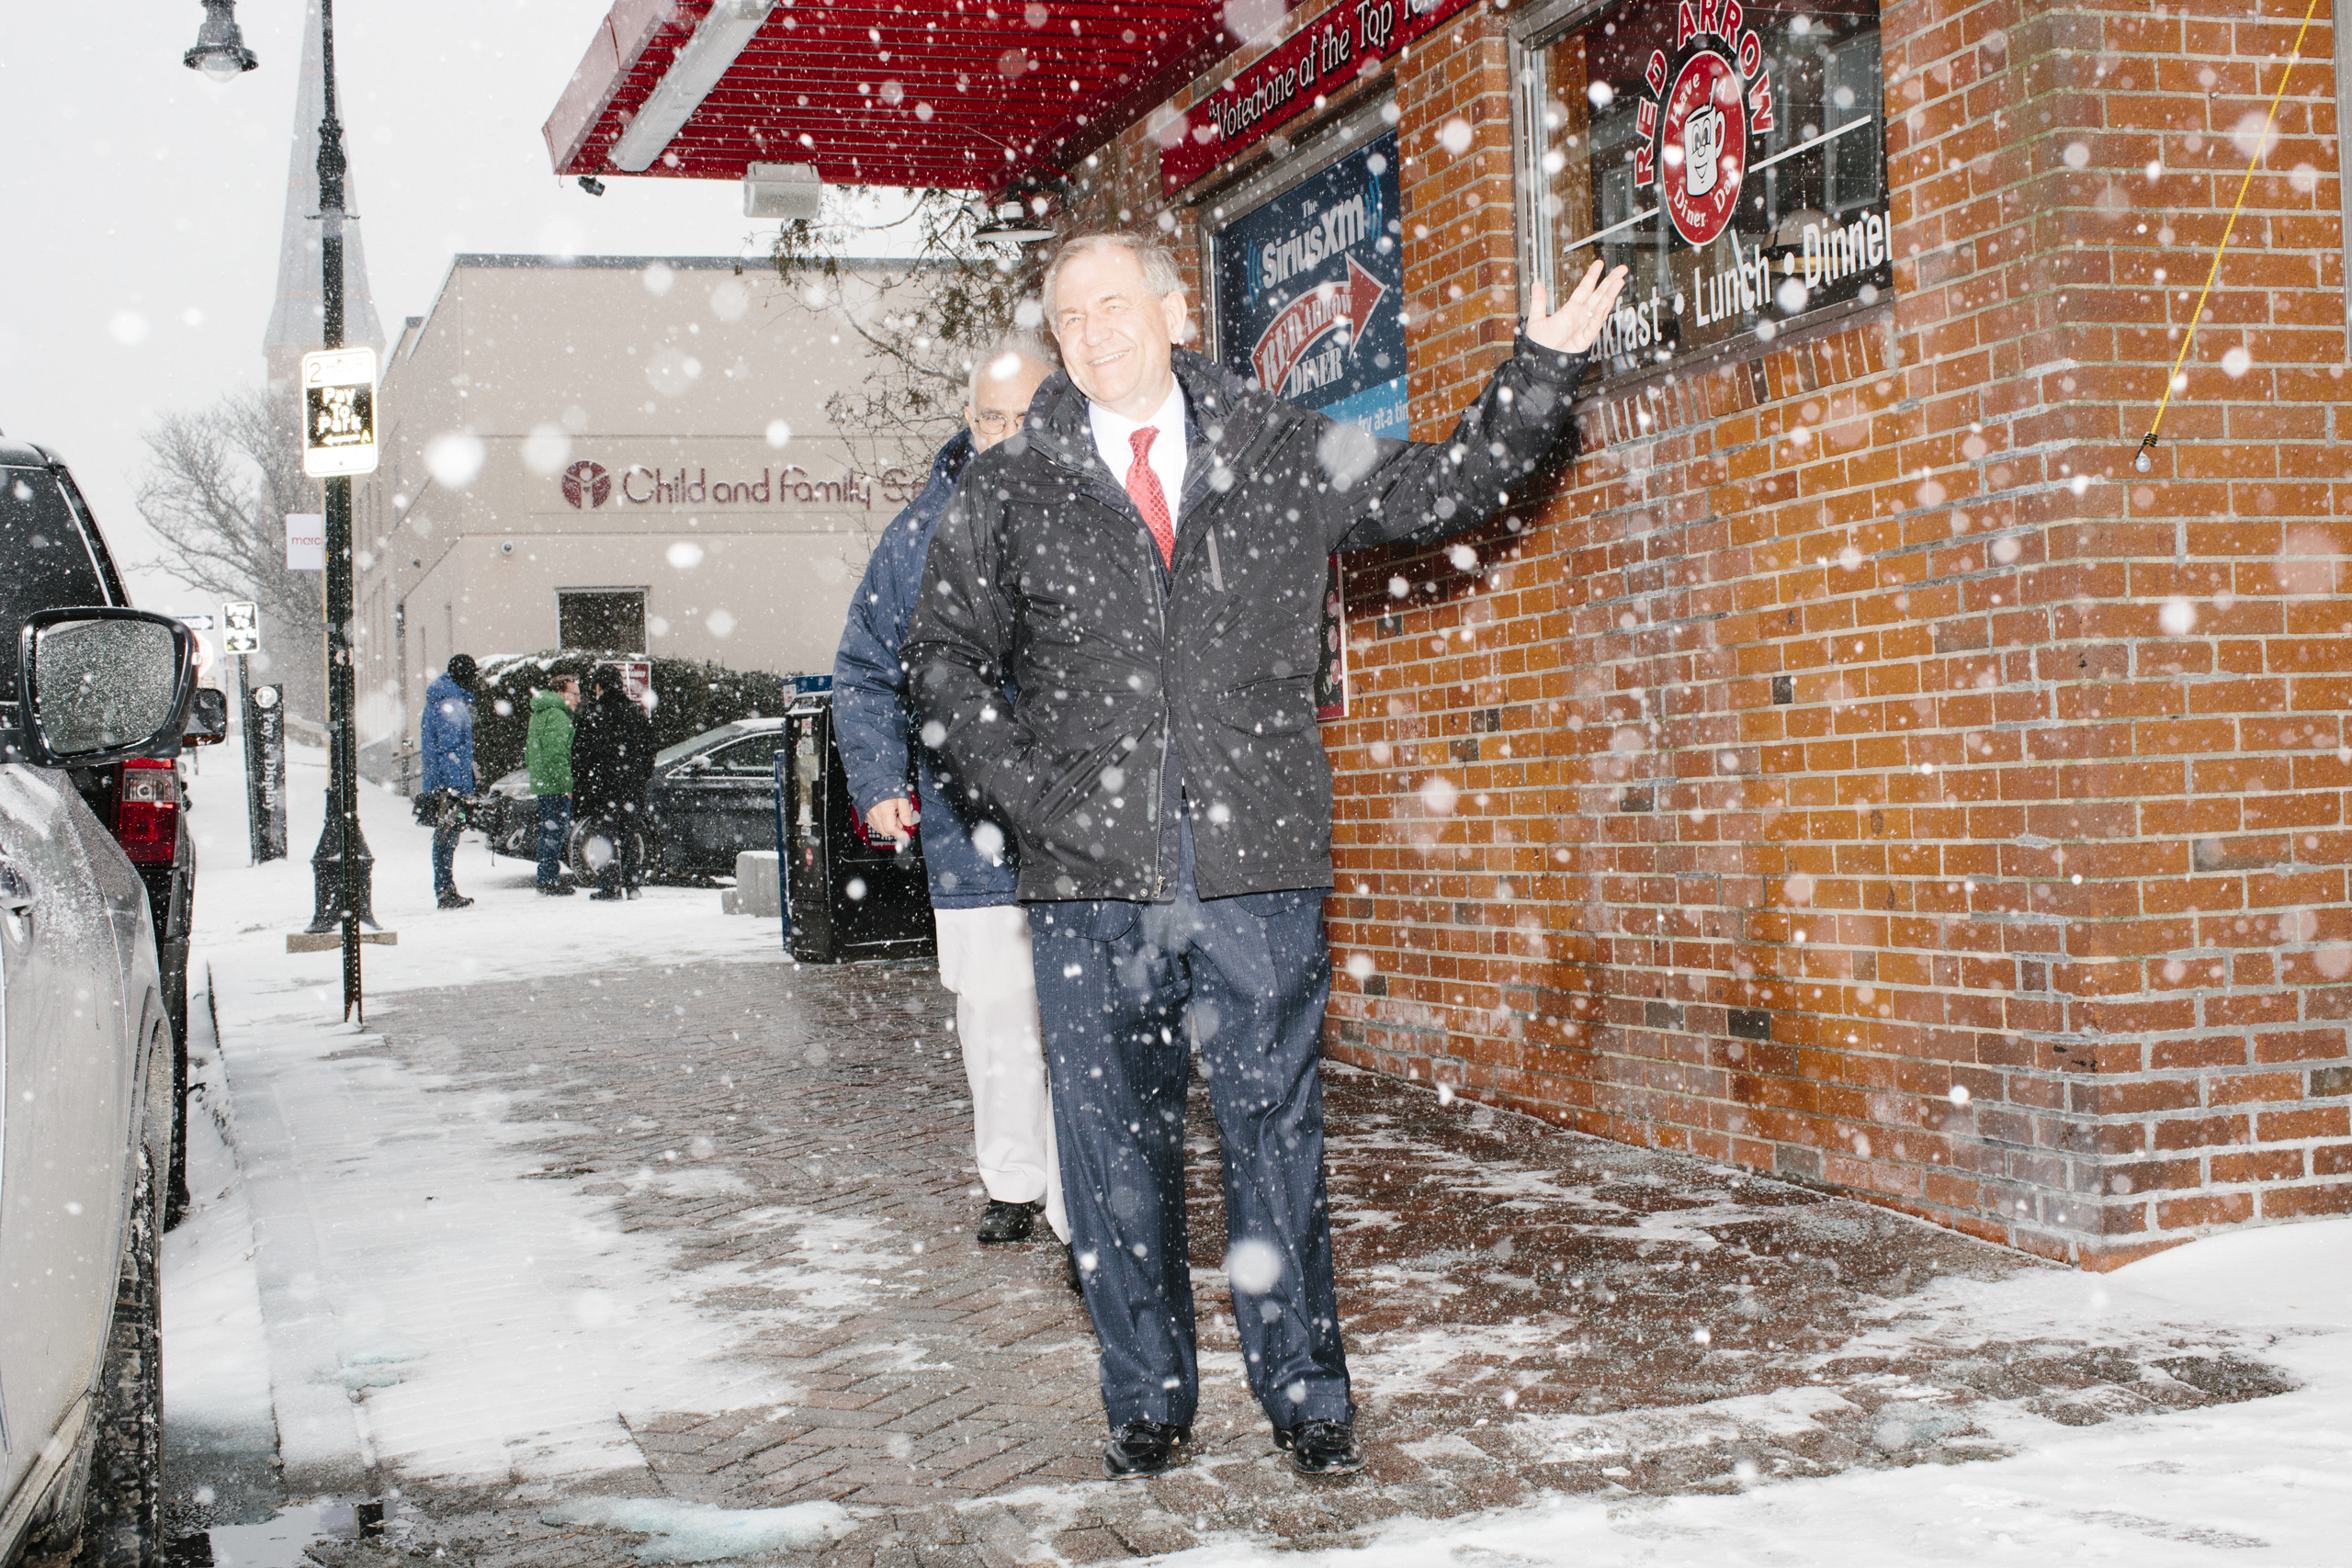 Former Virginia governor and Republican presidential candidate Jim Gilmore walks through the snow with brother-in-law Lloyd Gatling, of Suffolk, Virginia, after visit the Red Arrow Diner in Manchester, New Hampshire, on Mon., Feb. 8, 2016. The Red Arrow Diner is a frequent stop of political candidates. Sirius XM was broadcasting live from the diner Monday and Tuesday.